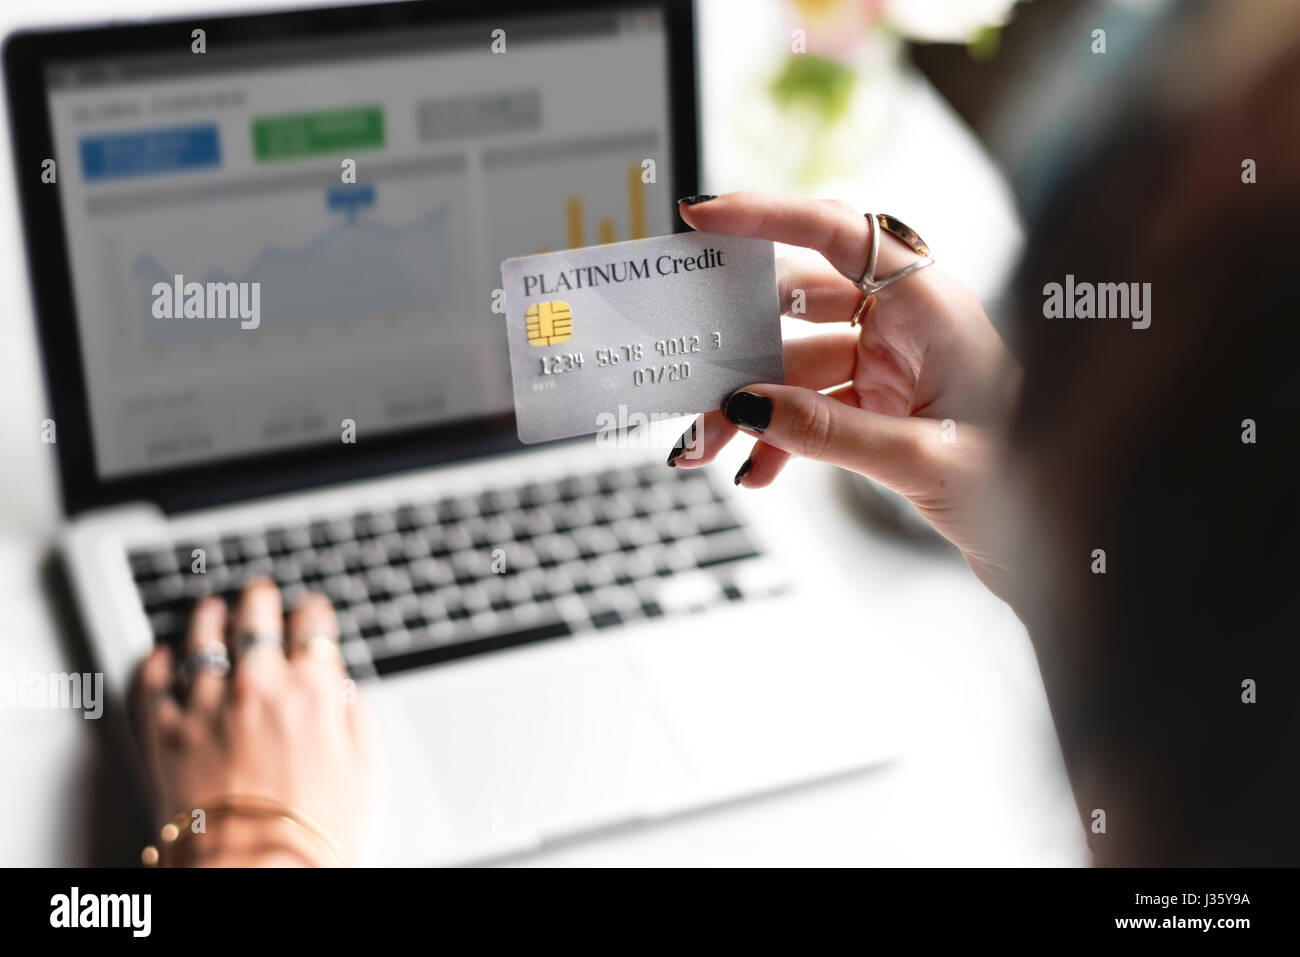 Woman Hand Holding Platinum Credit Card with Laptop Background - Stock Image